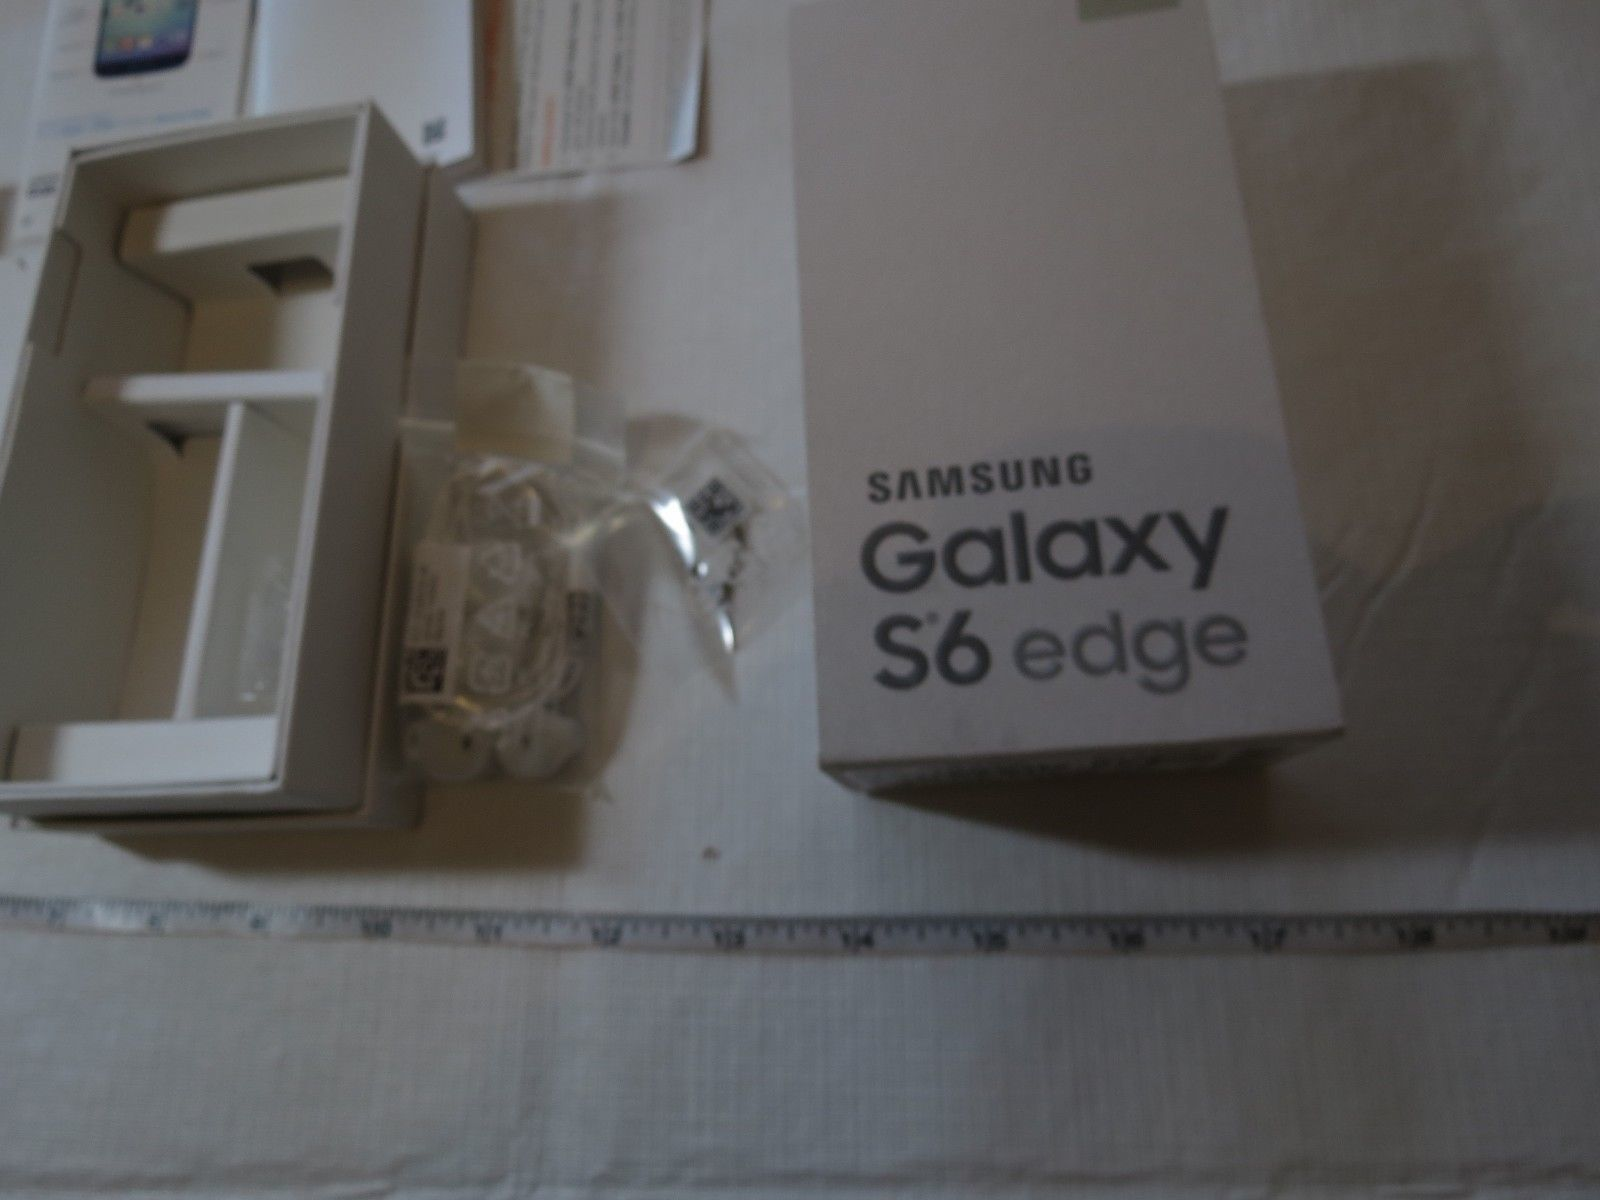 Samsung Galaxy S6 Edge 32GB BOX ONLY NO PHONE with new headphones booklets